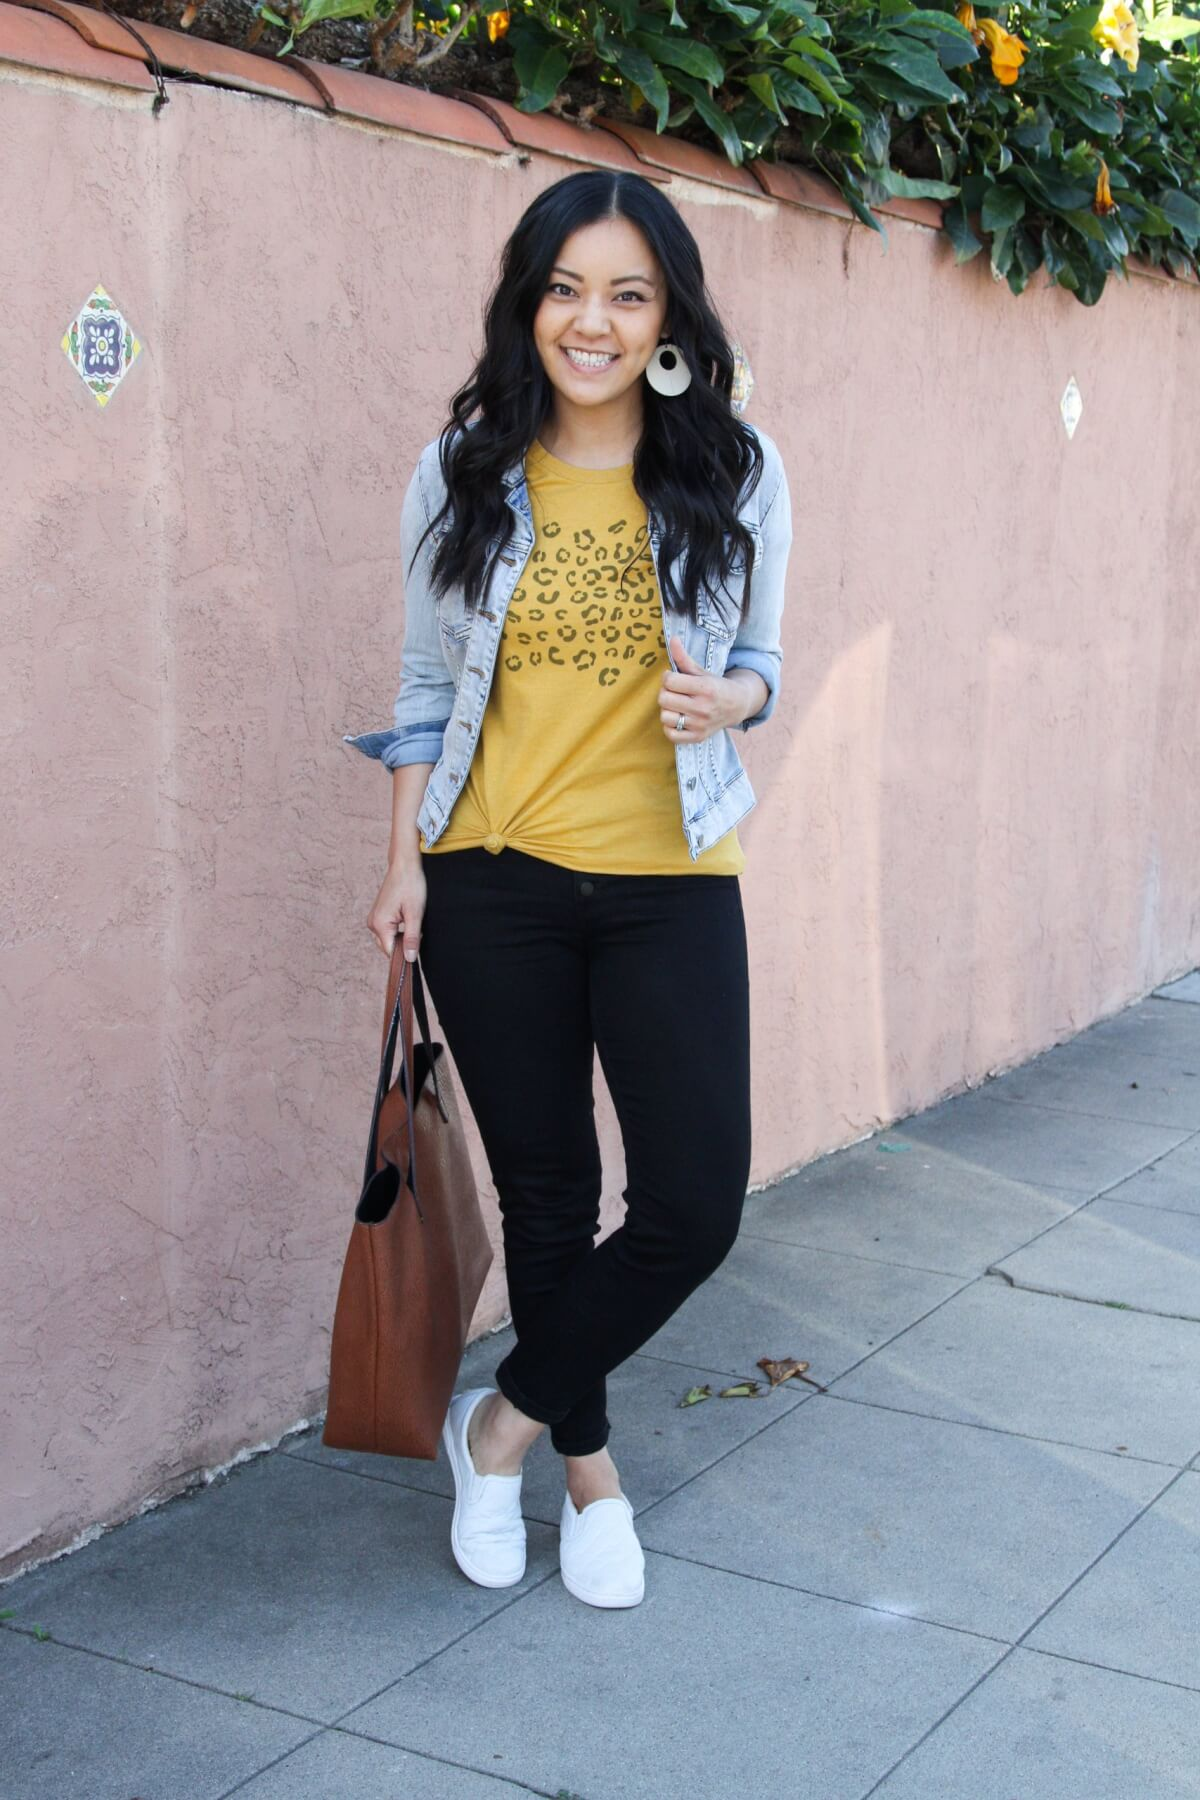 denim jacket outfit: denim jacket + yellow tee + black jeans +white sneakers + brown tote